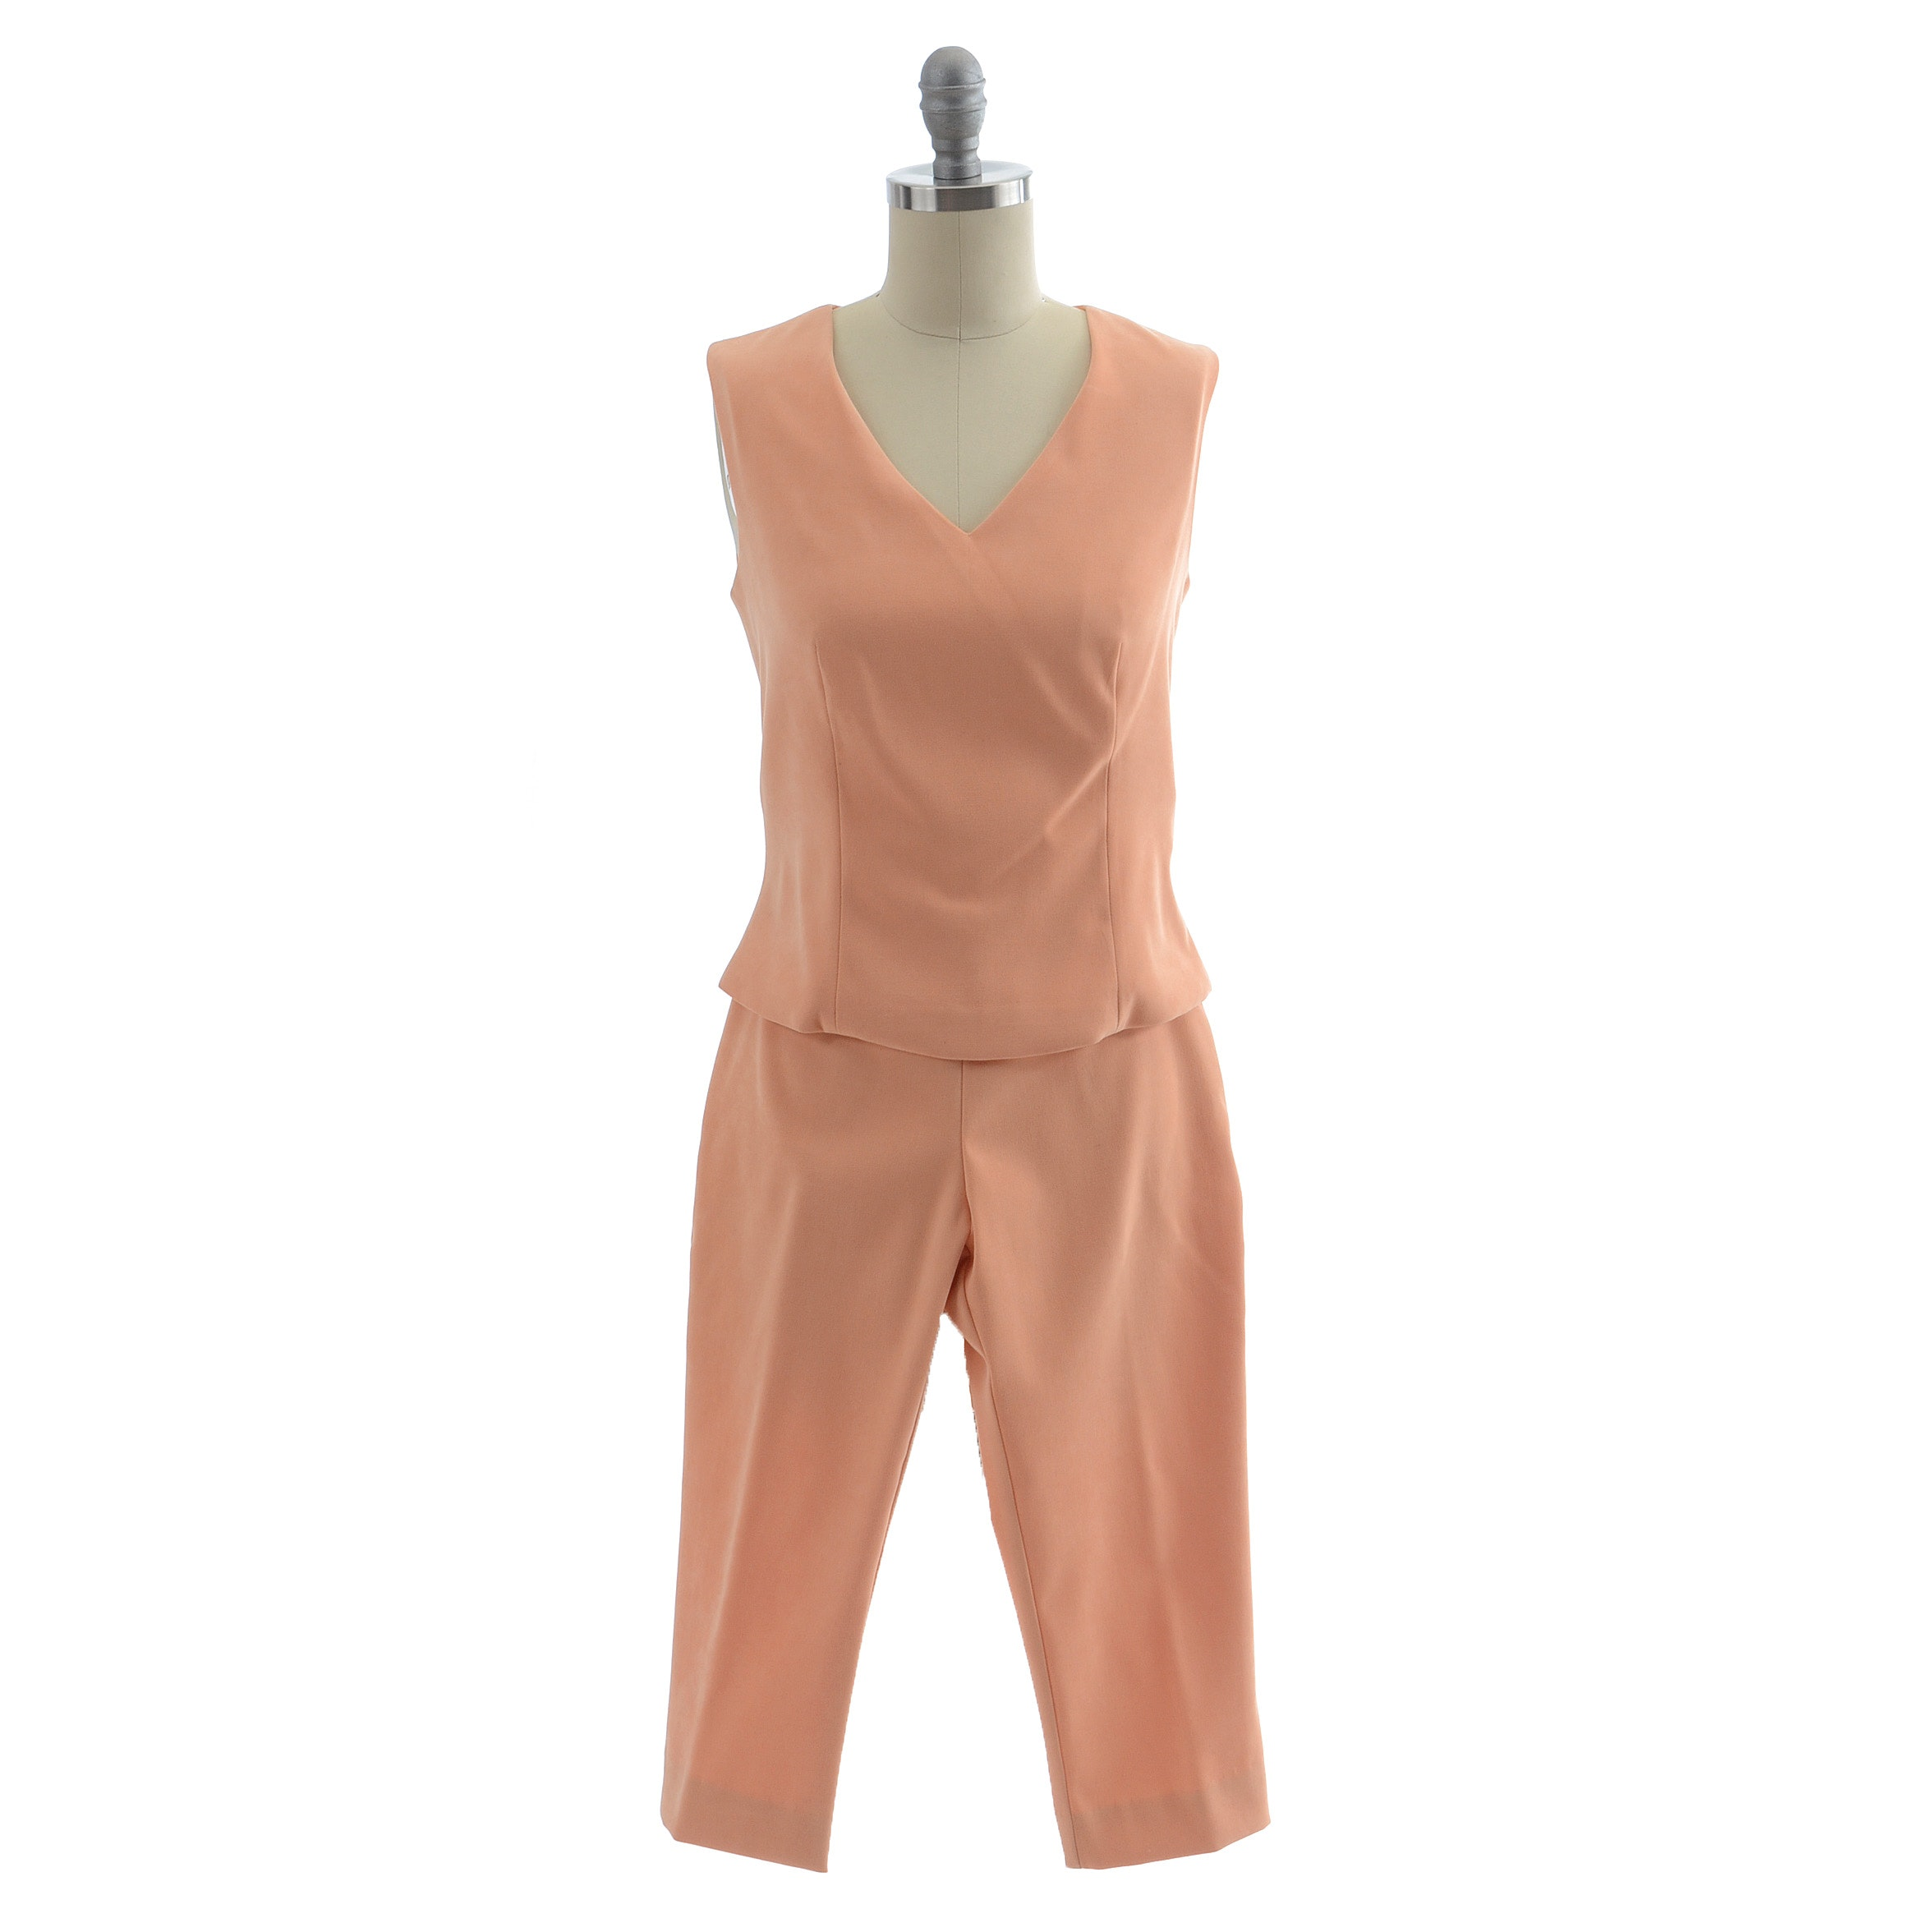 Benelle of New York Sleeveless Top and Cropped Pants in Peach